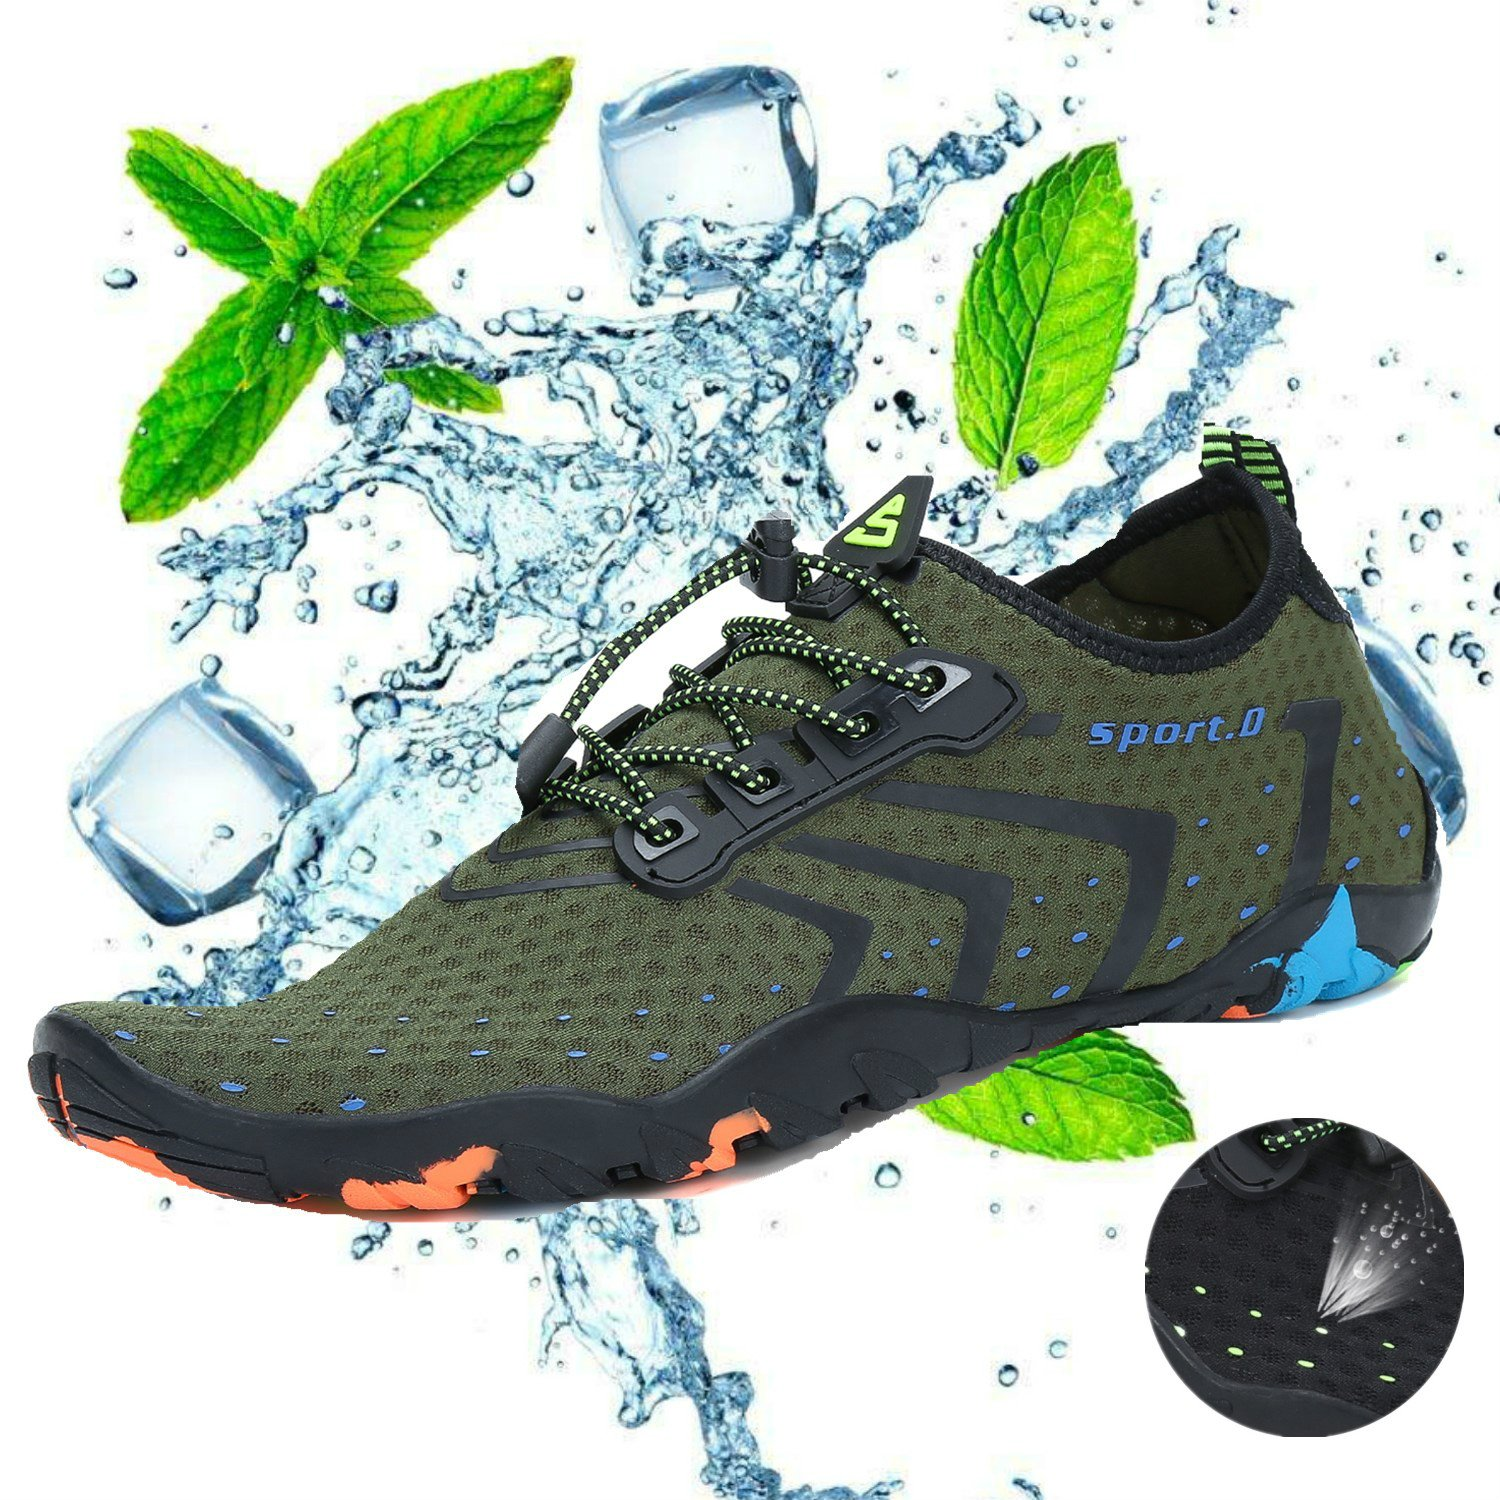 katliu Breathable Aqua Socks Mens Water Shoes Quick Dry Womens Outdoor Barefoot Skin for Beach B07CQTFHDX 11 US Men|Green